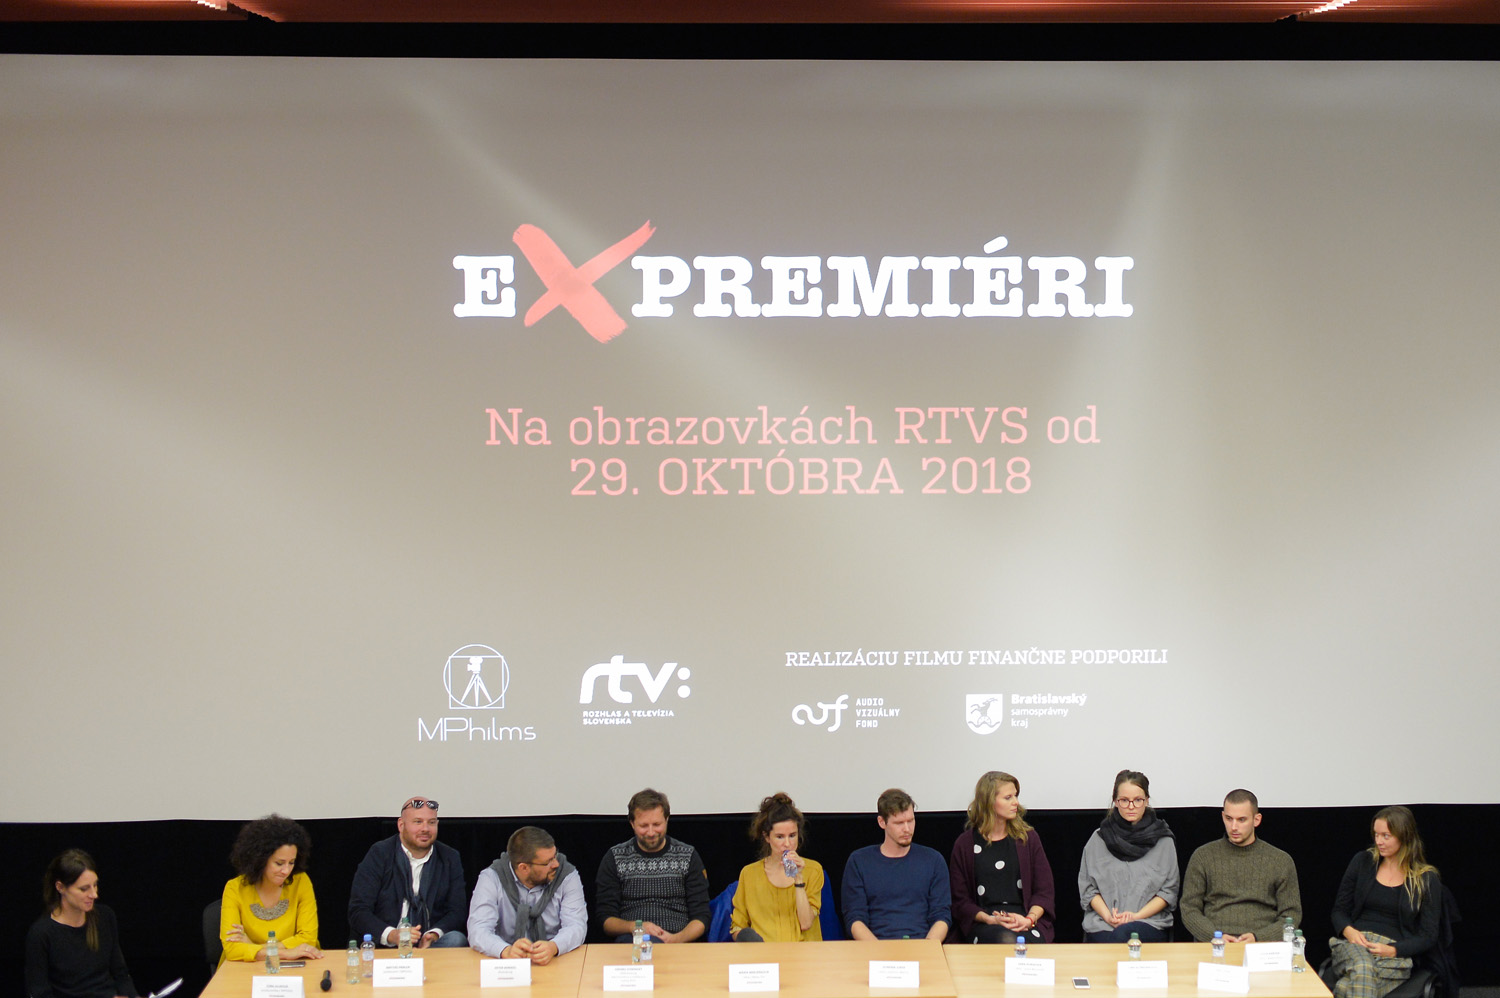 """Presentation of the documentary cycle """"Expremiers"""" (photo by Robert Tappert)"""